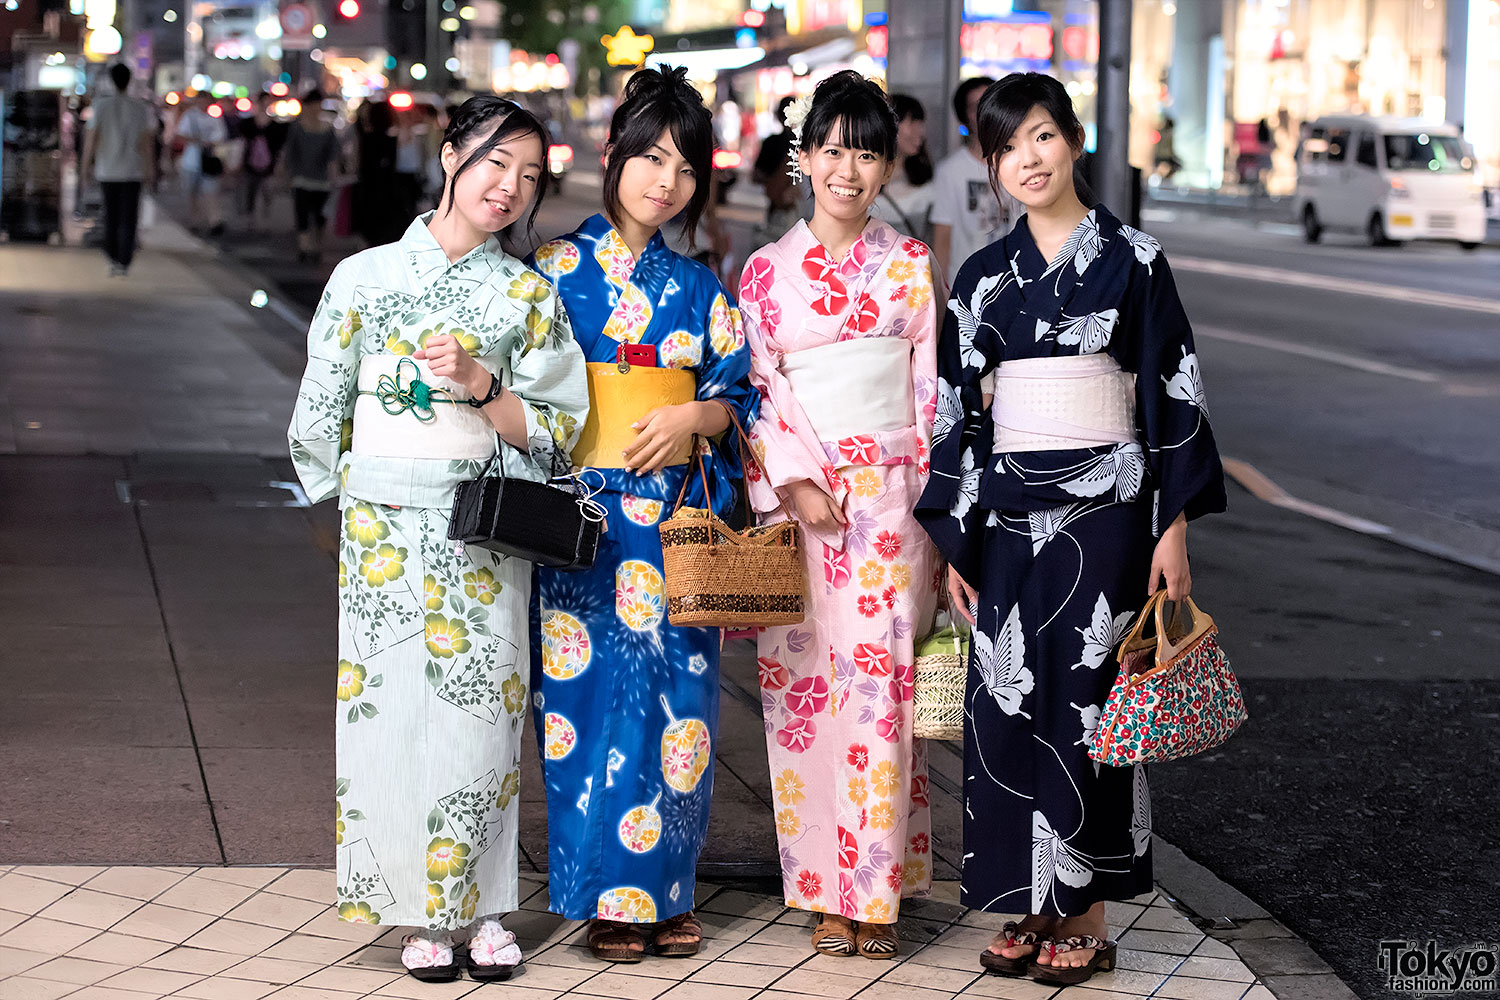 https://i2.wp.com/tokyofashion.com/wp-content/uploads/2014/08/Japanese-Yukata-Harajuku-2014-08-086-2260.jpg